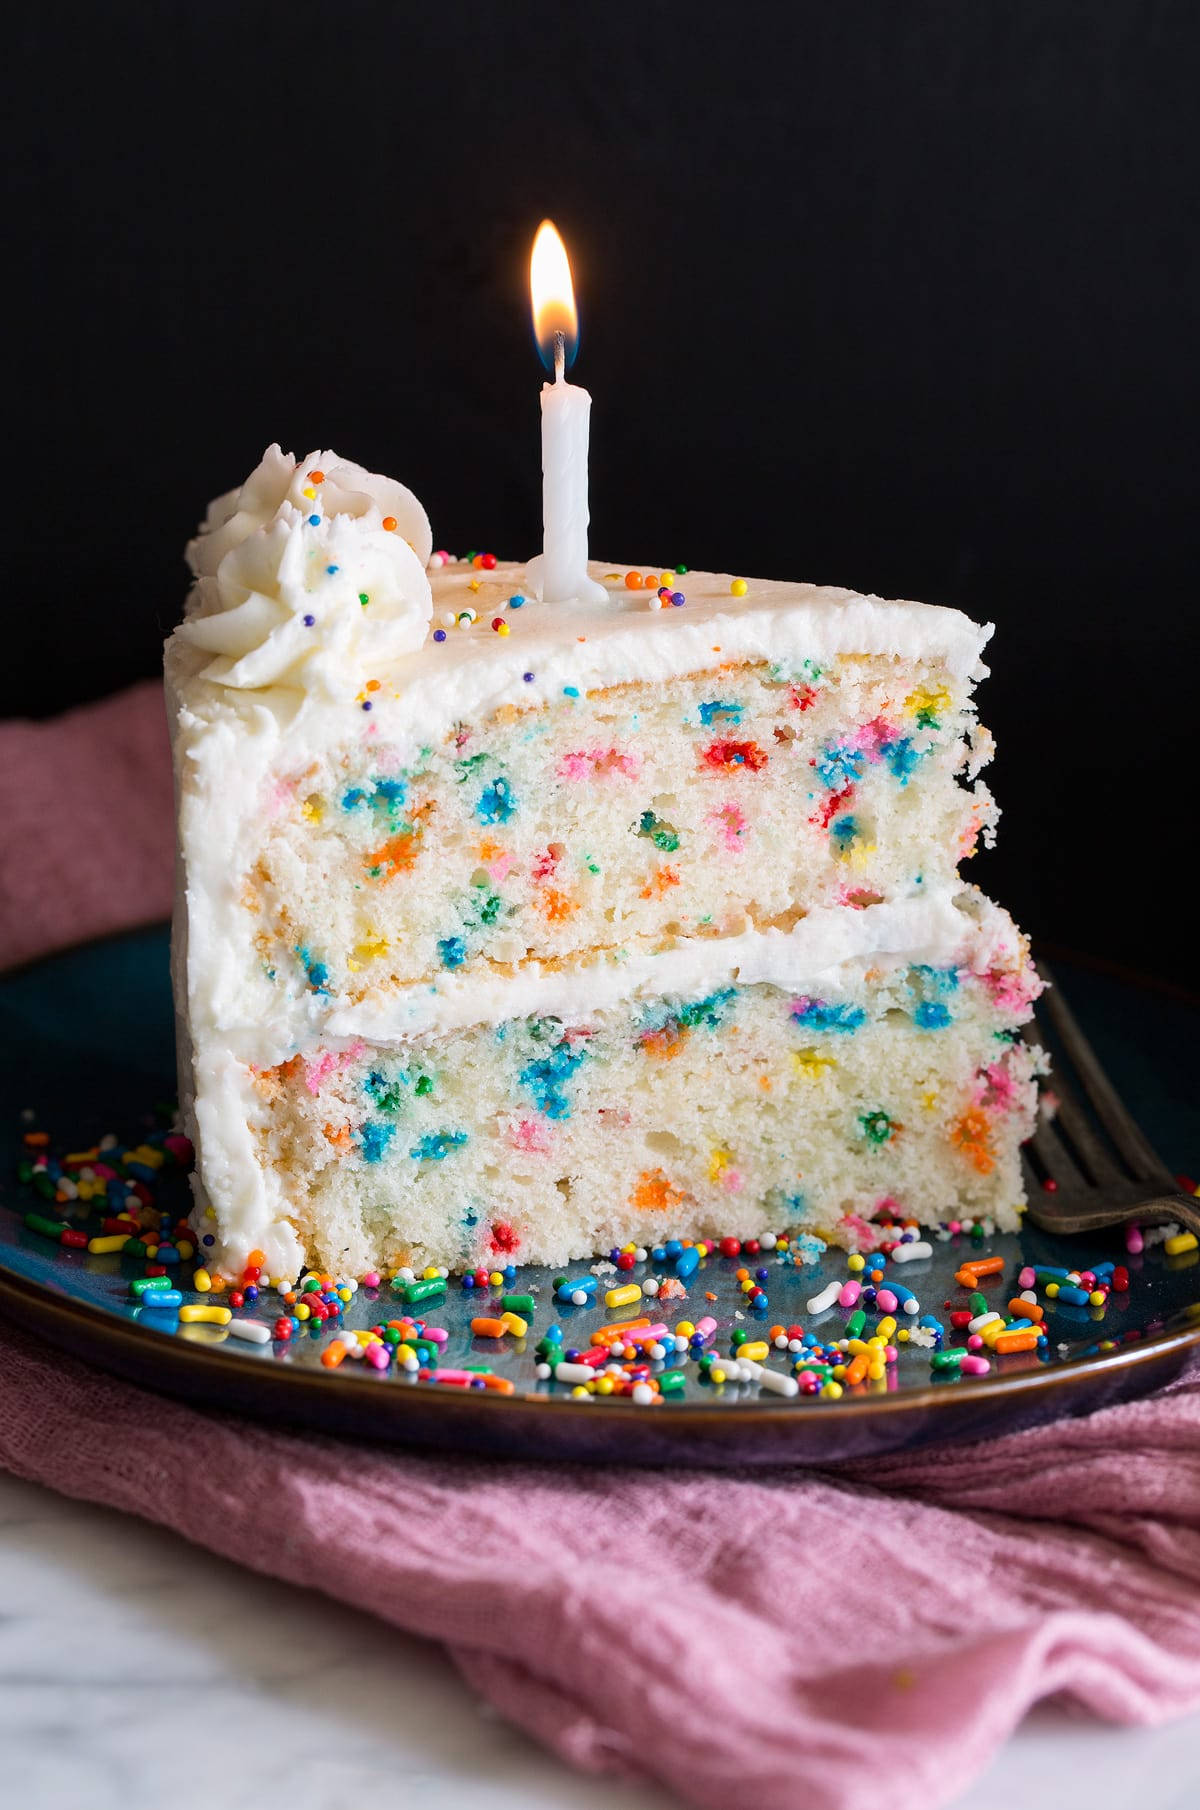 Tremendous Best Birthday Cake Recipe Funfetti Cake Cooking Classy Funny Birthday Cards Online Bapapcheapnameinfo